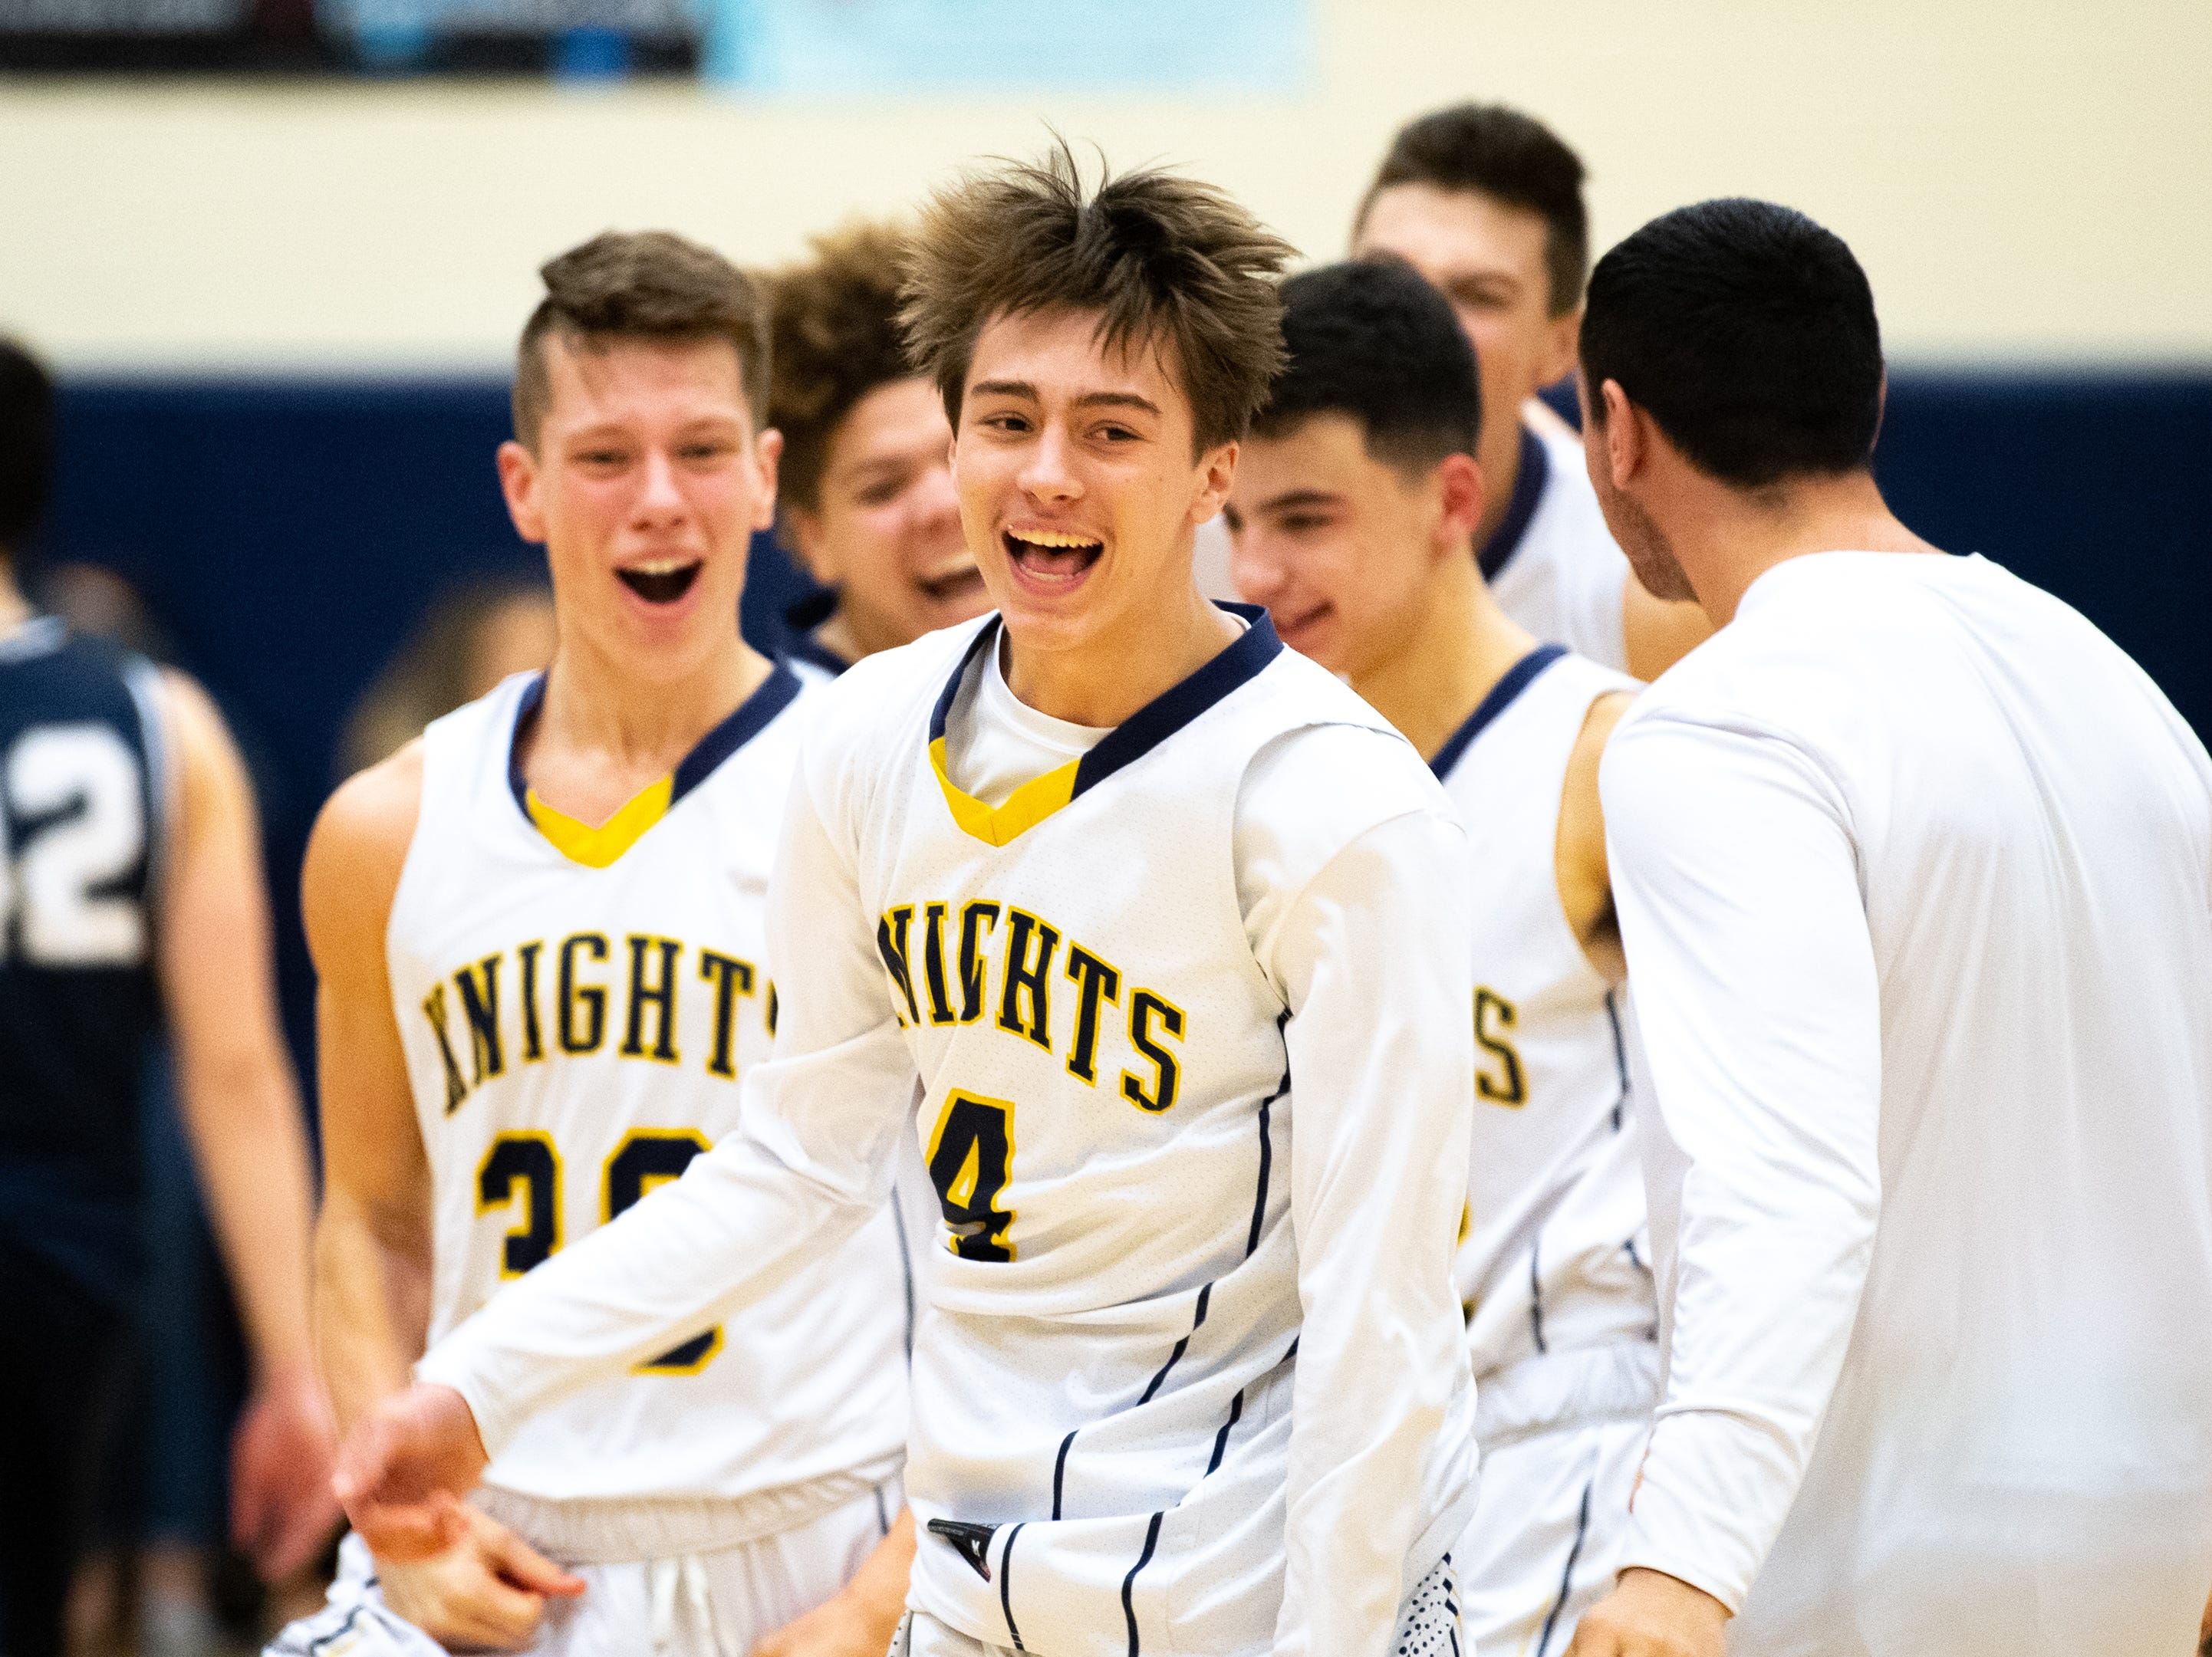 Eastern York celebrates after defeating West York 59 to 55 at home, Friday, January 25, 2019.